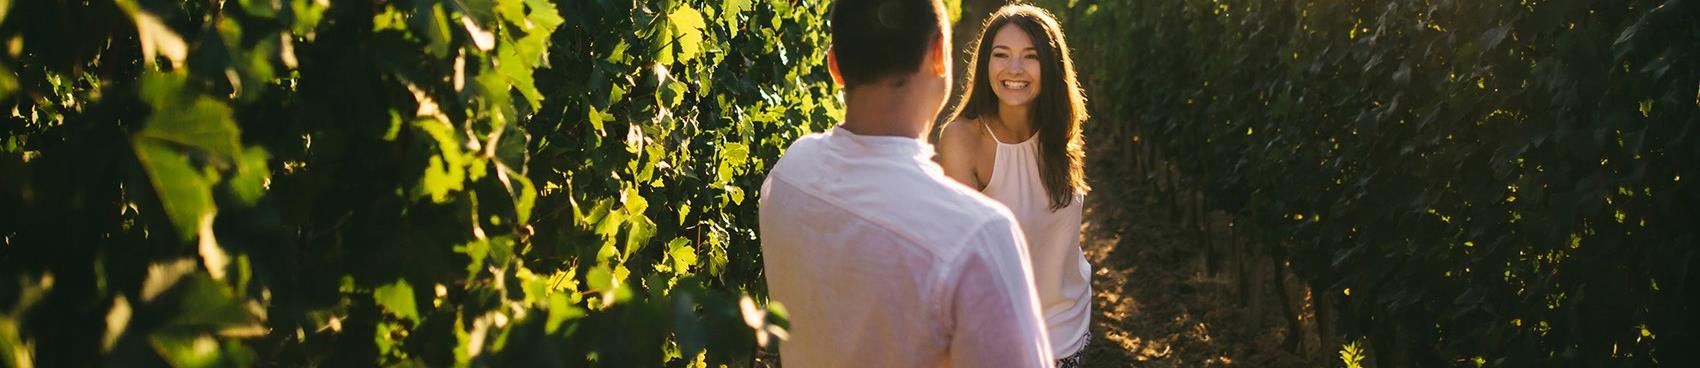 Purchase Tickets to 2020 Passport to Napa Valley Wine Country at CellarPass Passports on CellarPass